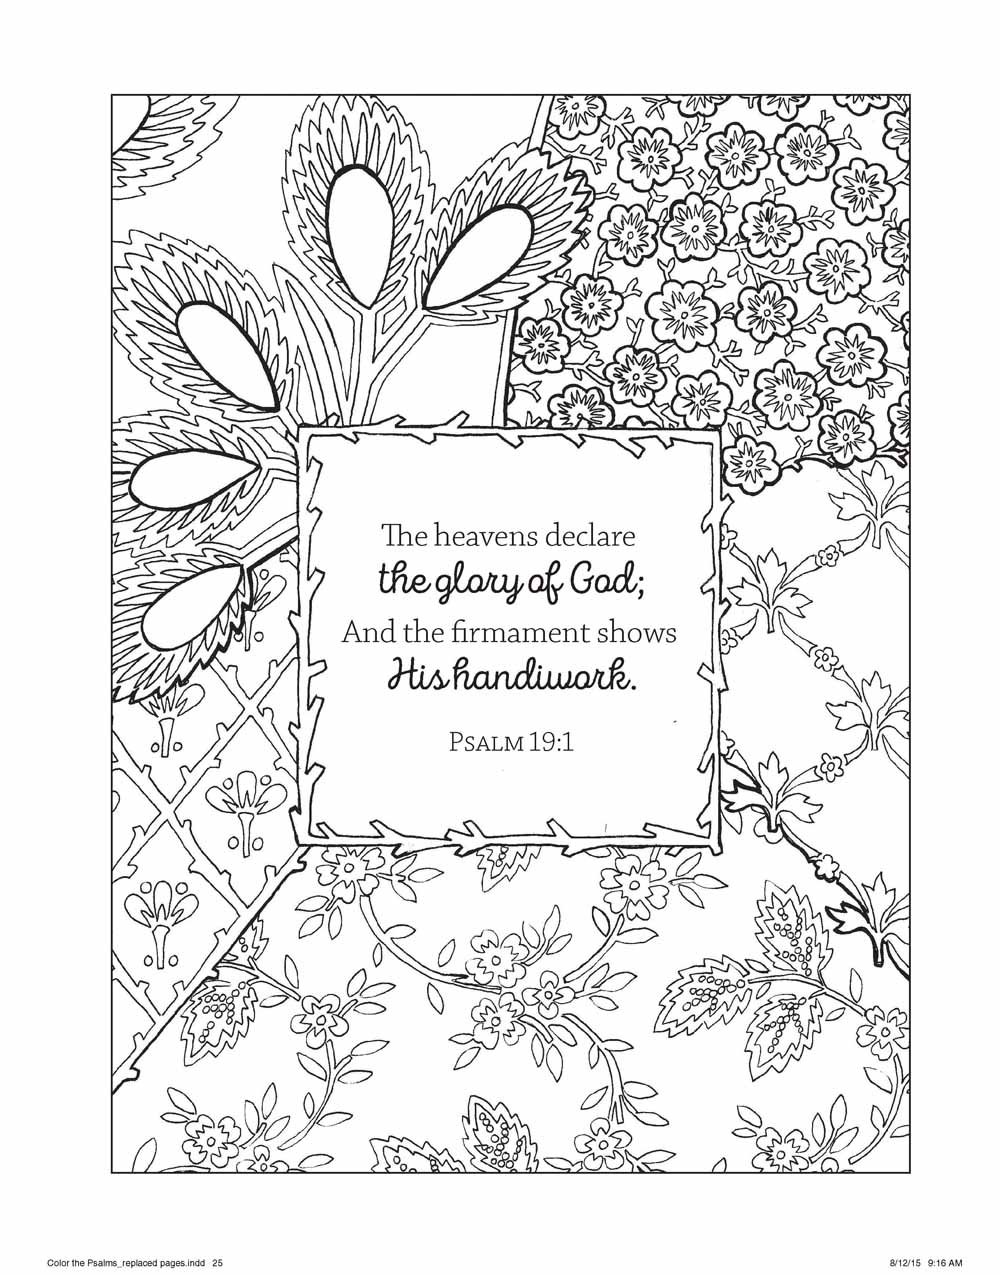 psalm 51 coloring page - color the psalms an adult coloring book for your soul